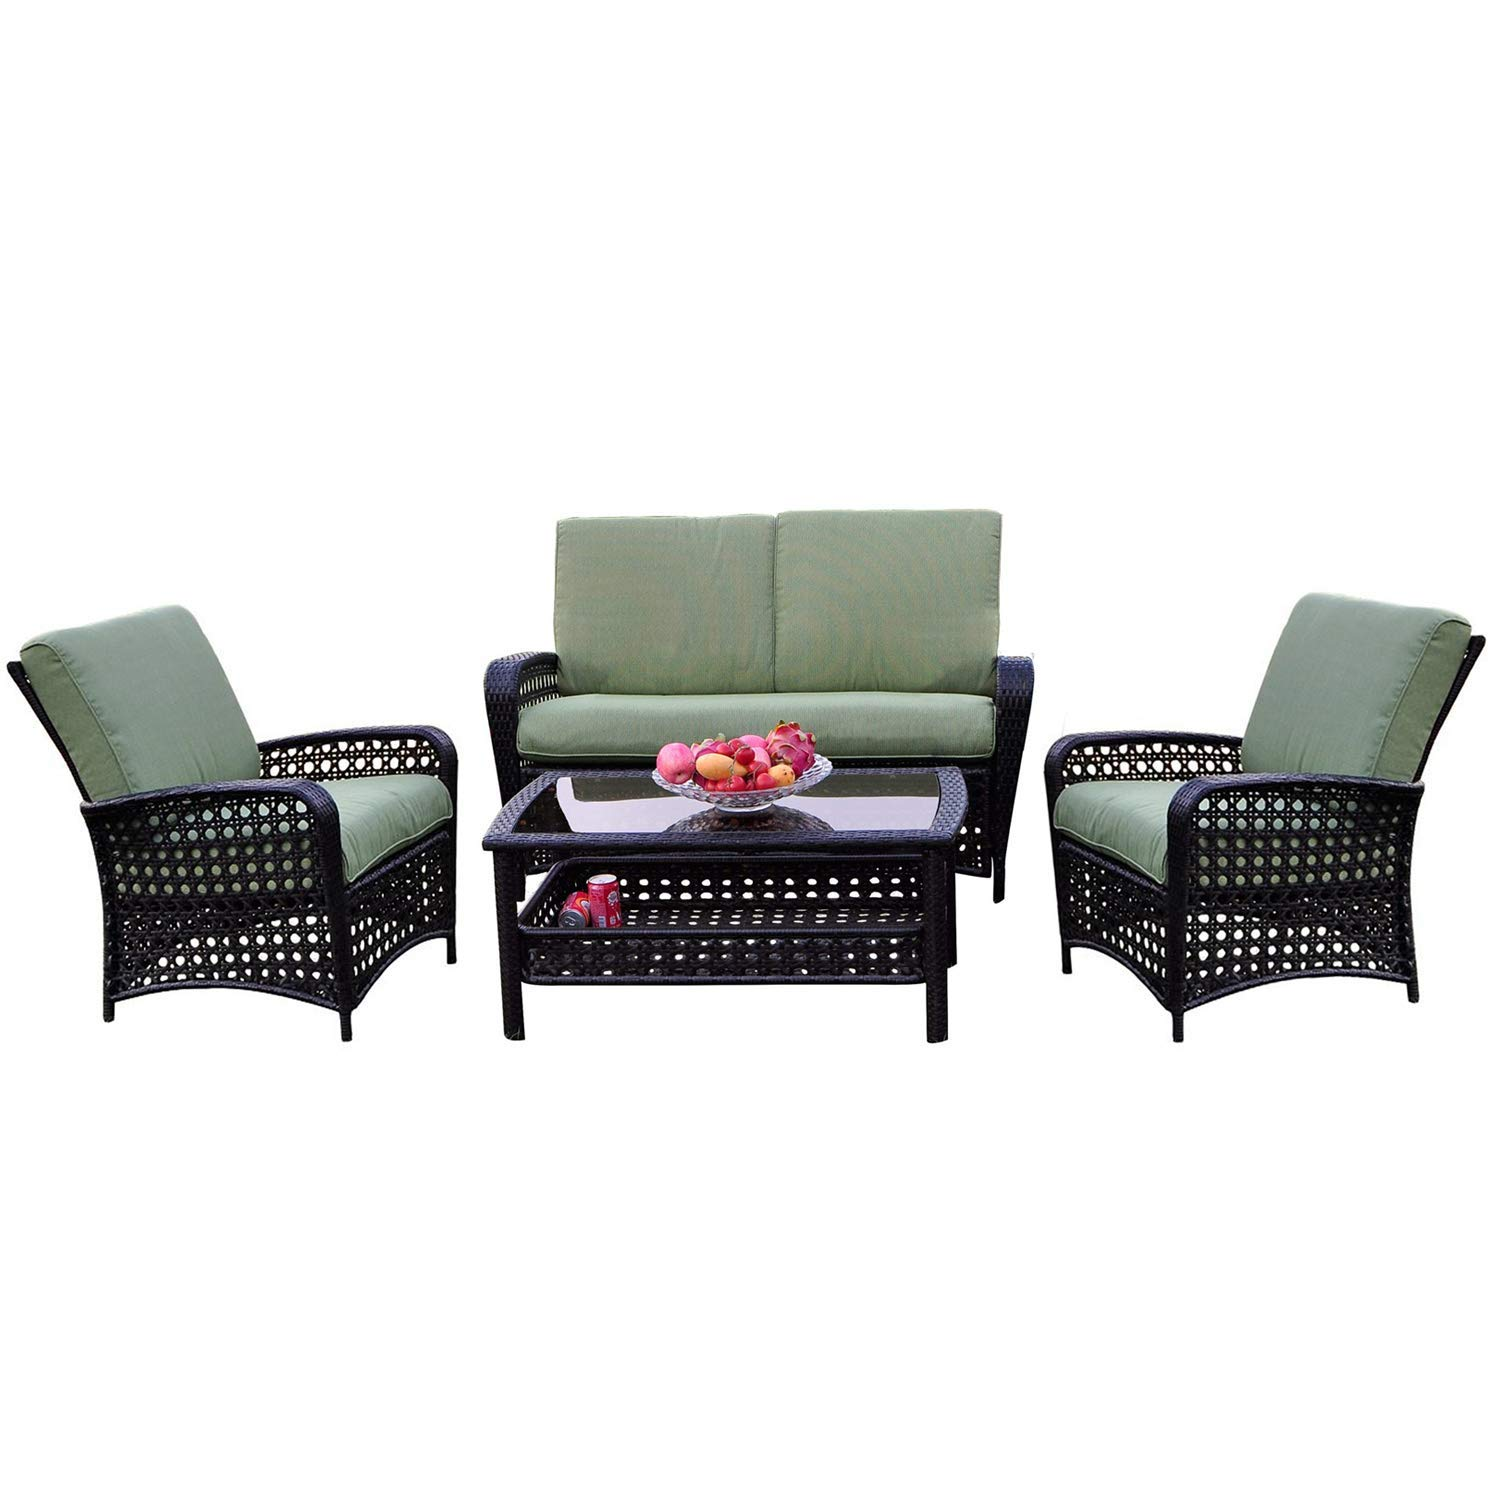 Get Quotations I Choice 4 Pcs Patio Rattan Furniture Set All Weather Outdoor Wicker Sofas With